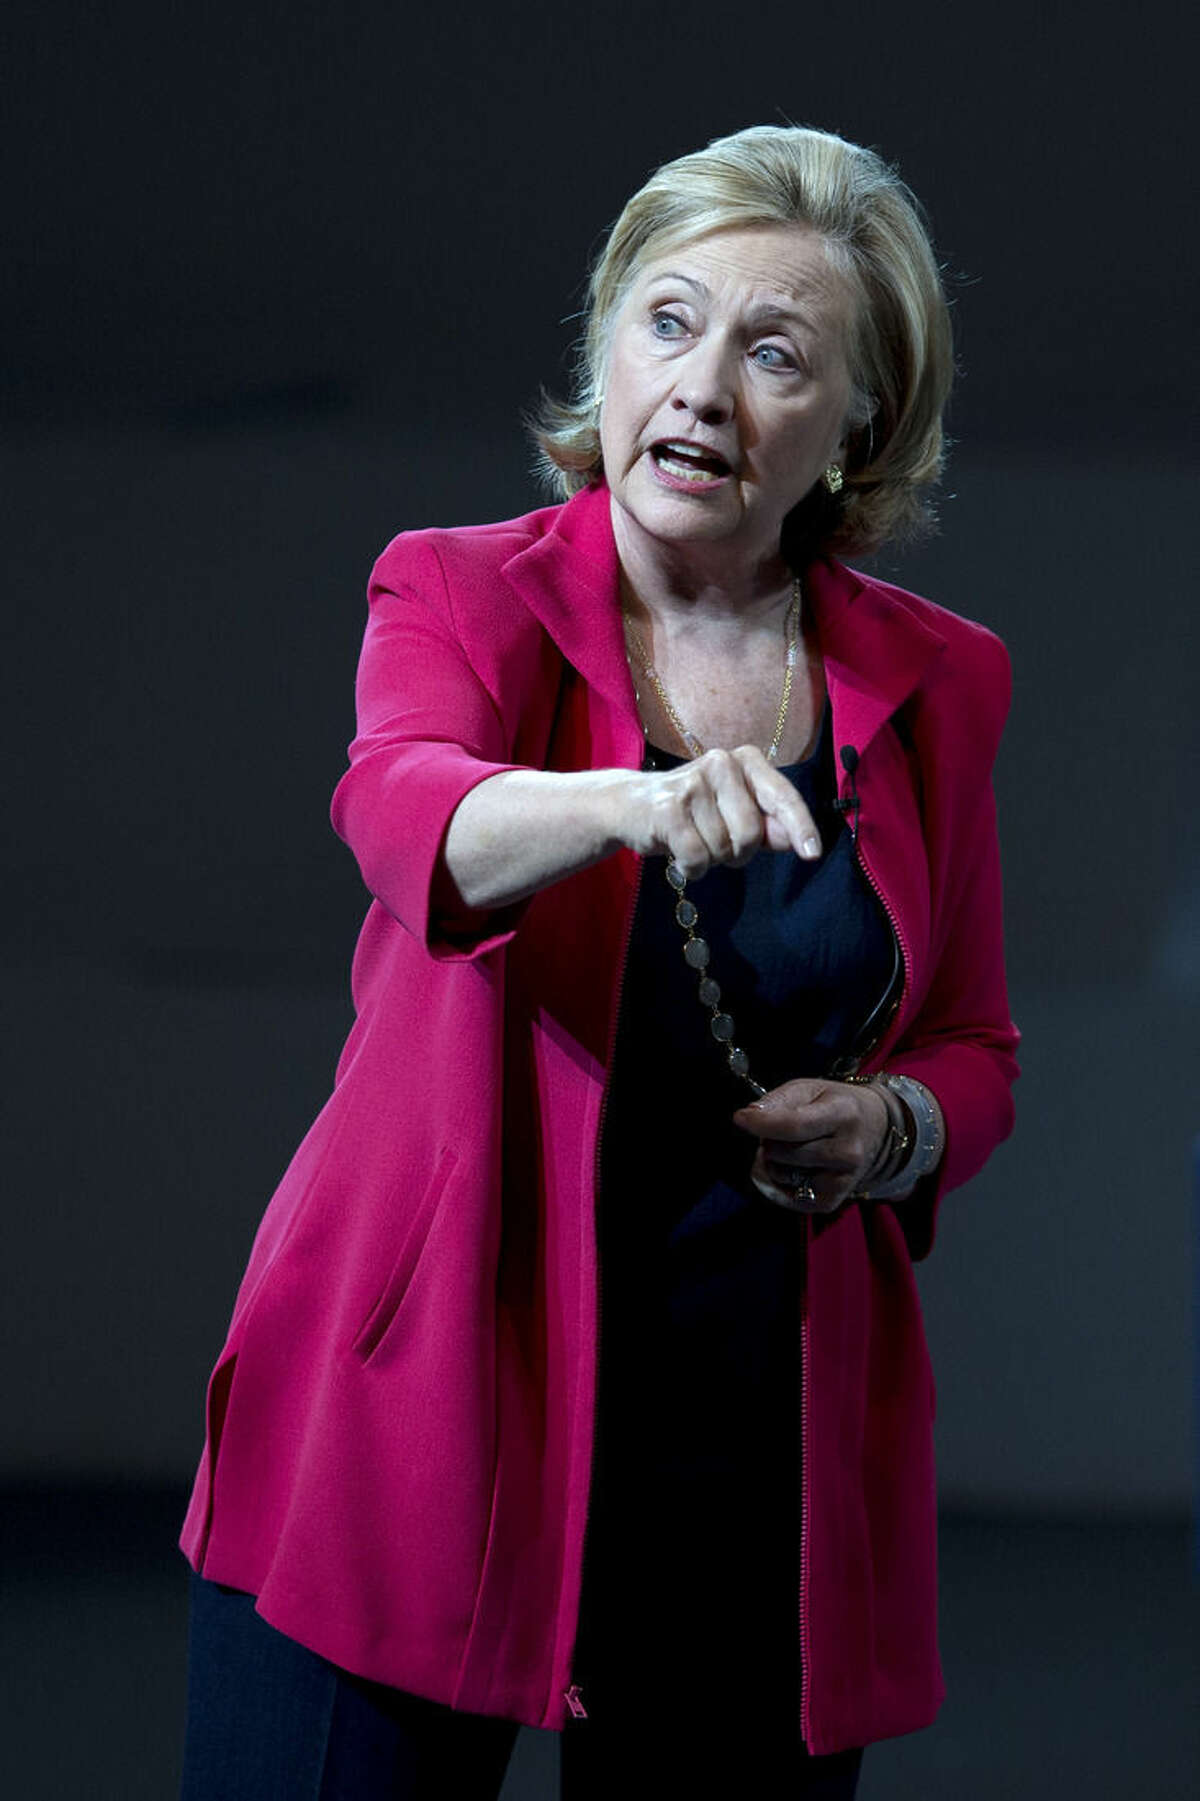 Former Secretary of State Hillary Rodham Clinton speaks to the scholarship recipients of the Telmex Foundation during the annual Mexico XXI Century event, hosted by billionaire Carlos Slim, in Mexico City, Mexico, Friday, Sept. 5, 2014. (AP Photo/Dario Lopez-Mills))